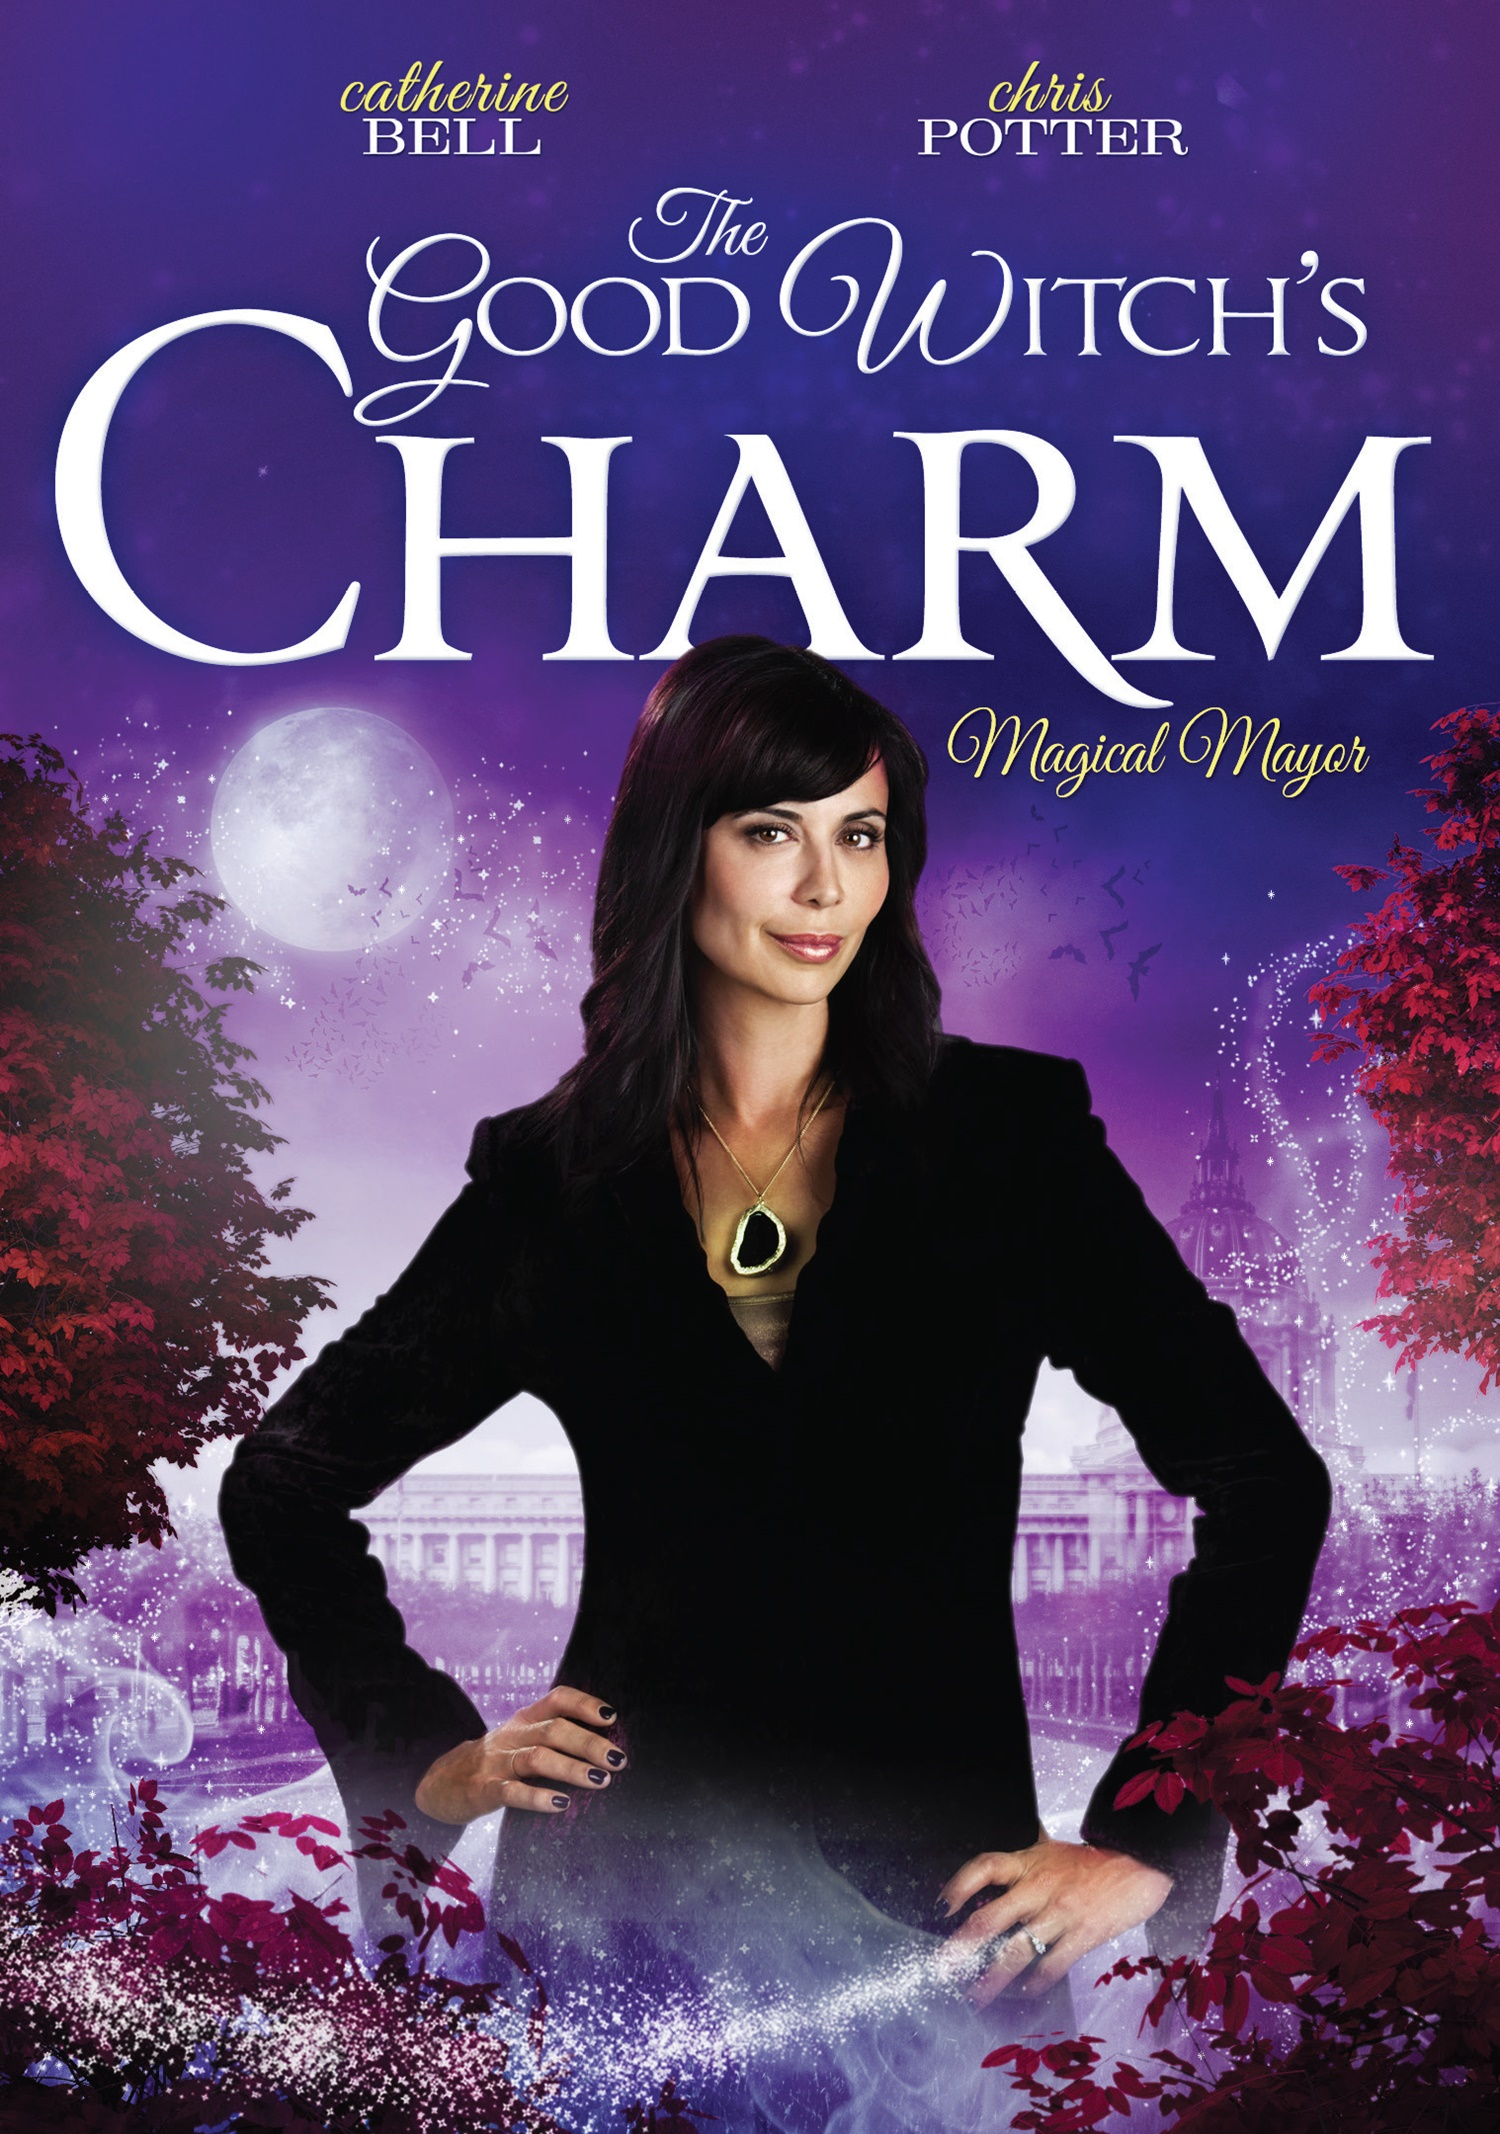 The Good Witch Charm (2012)